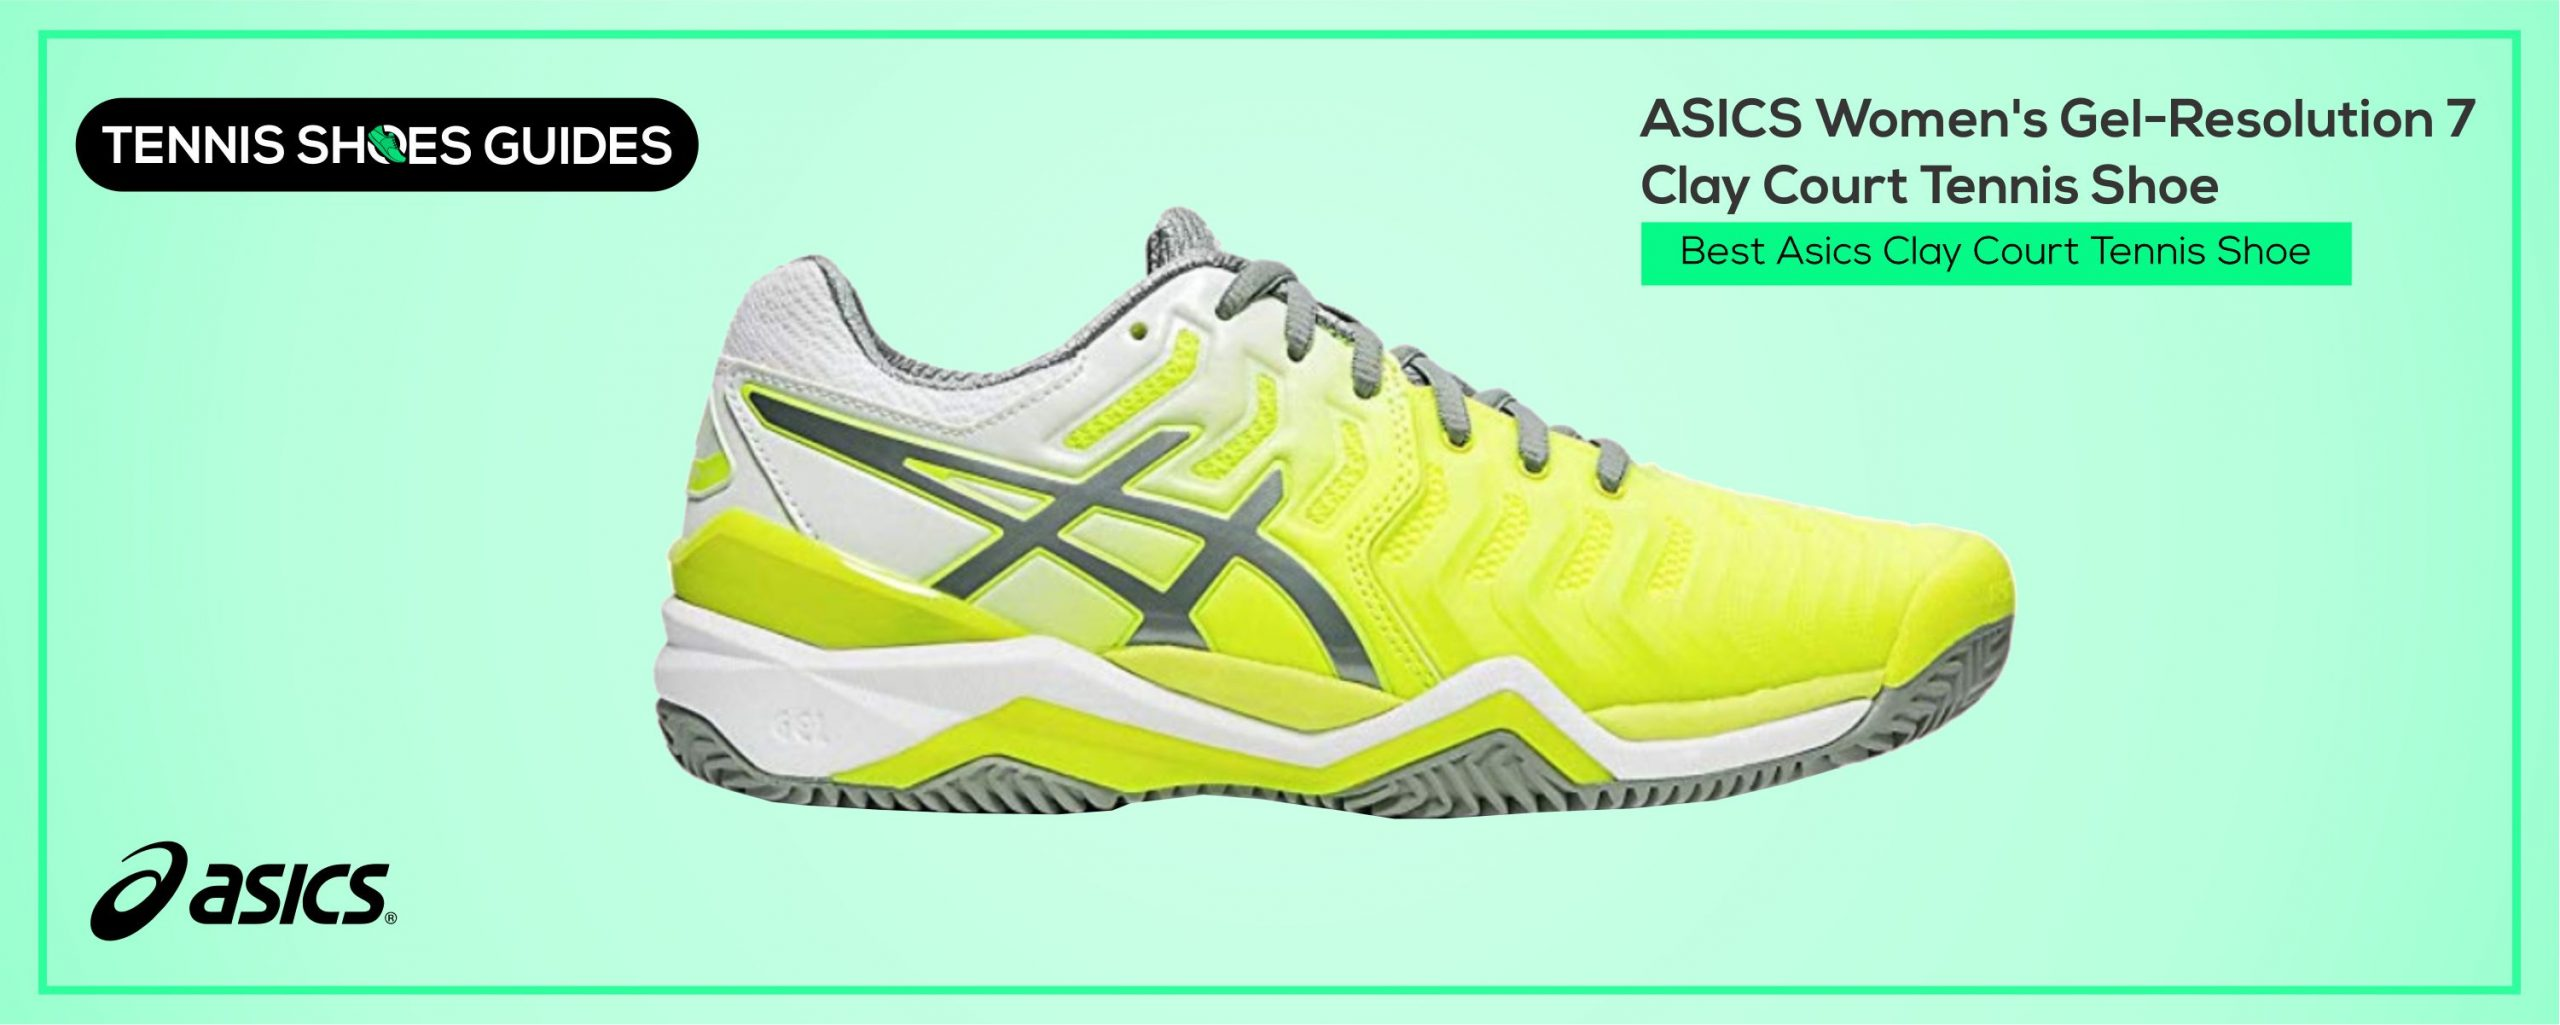 Best Asics Clay Court Tennis Shoe